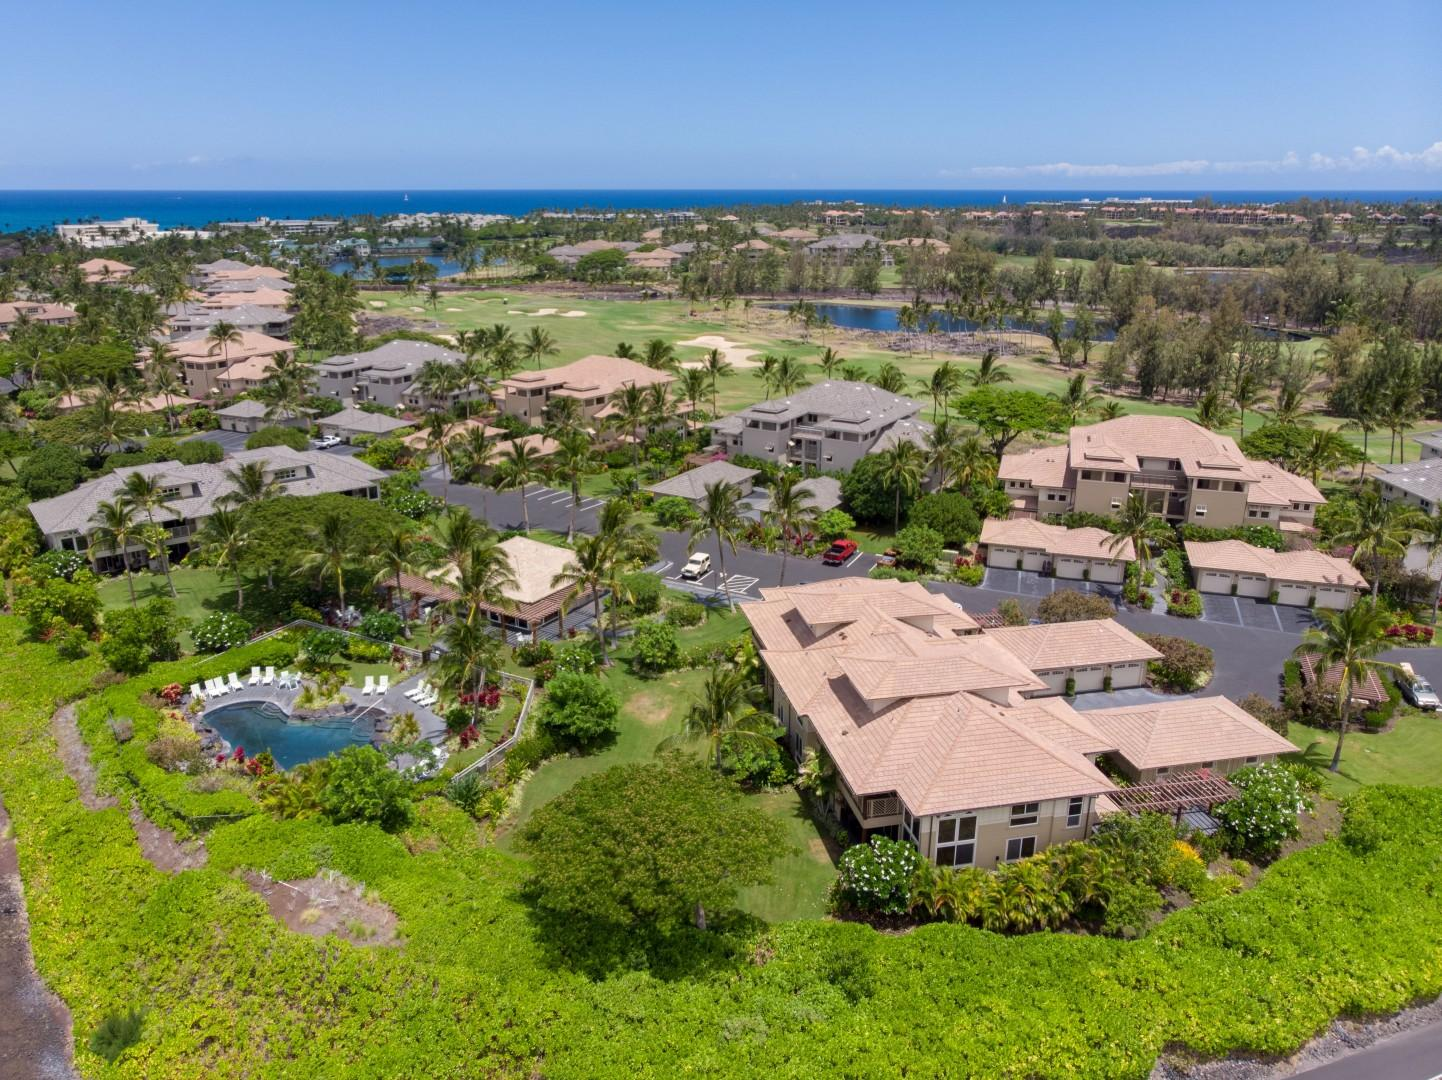 Aerial View of the Villa at the Quiet End of the Complex